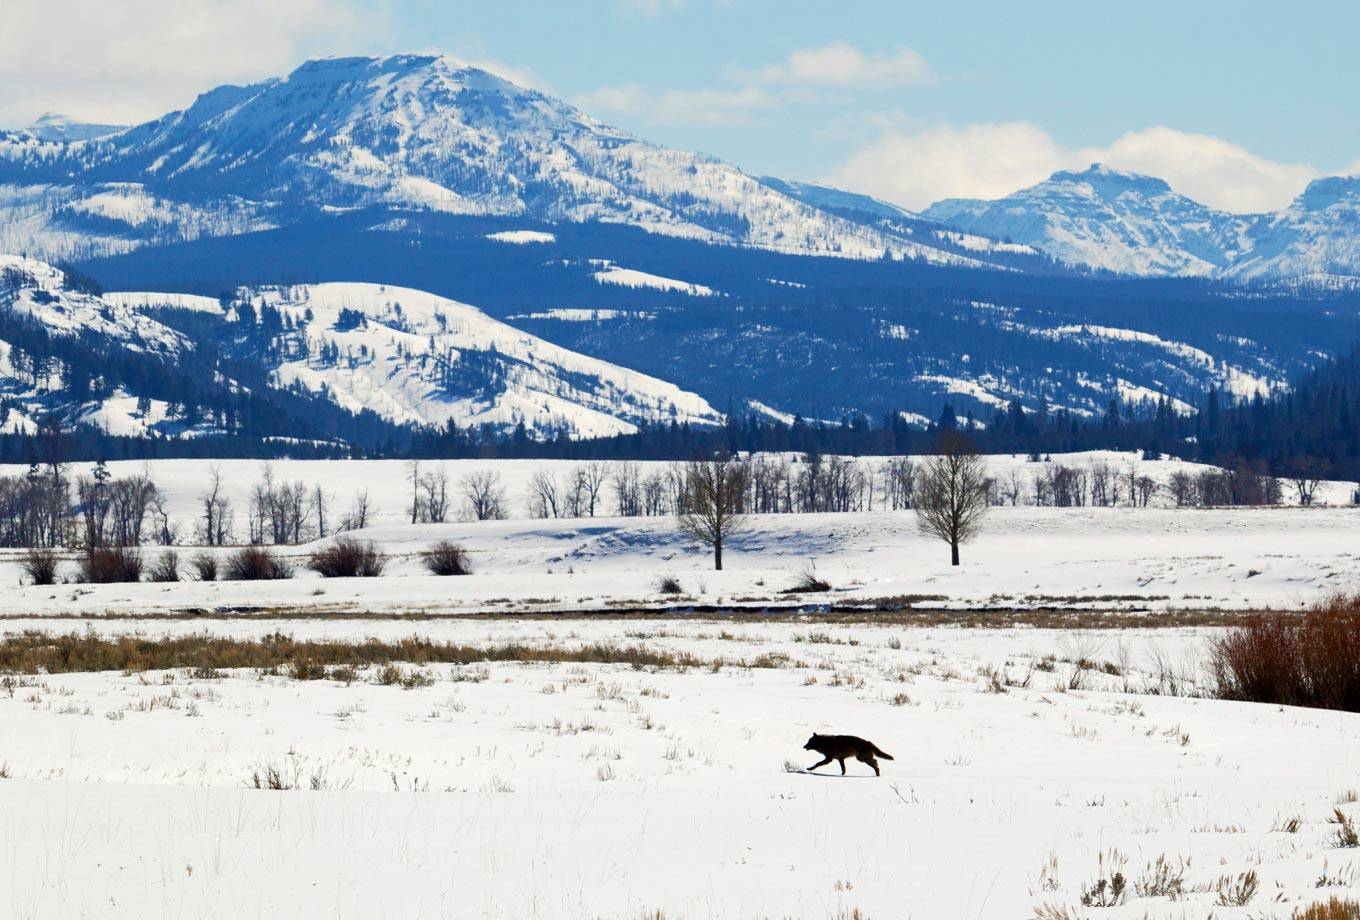 Winter wolf at Lamar Valley in Yellowstone National Park